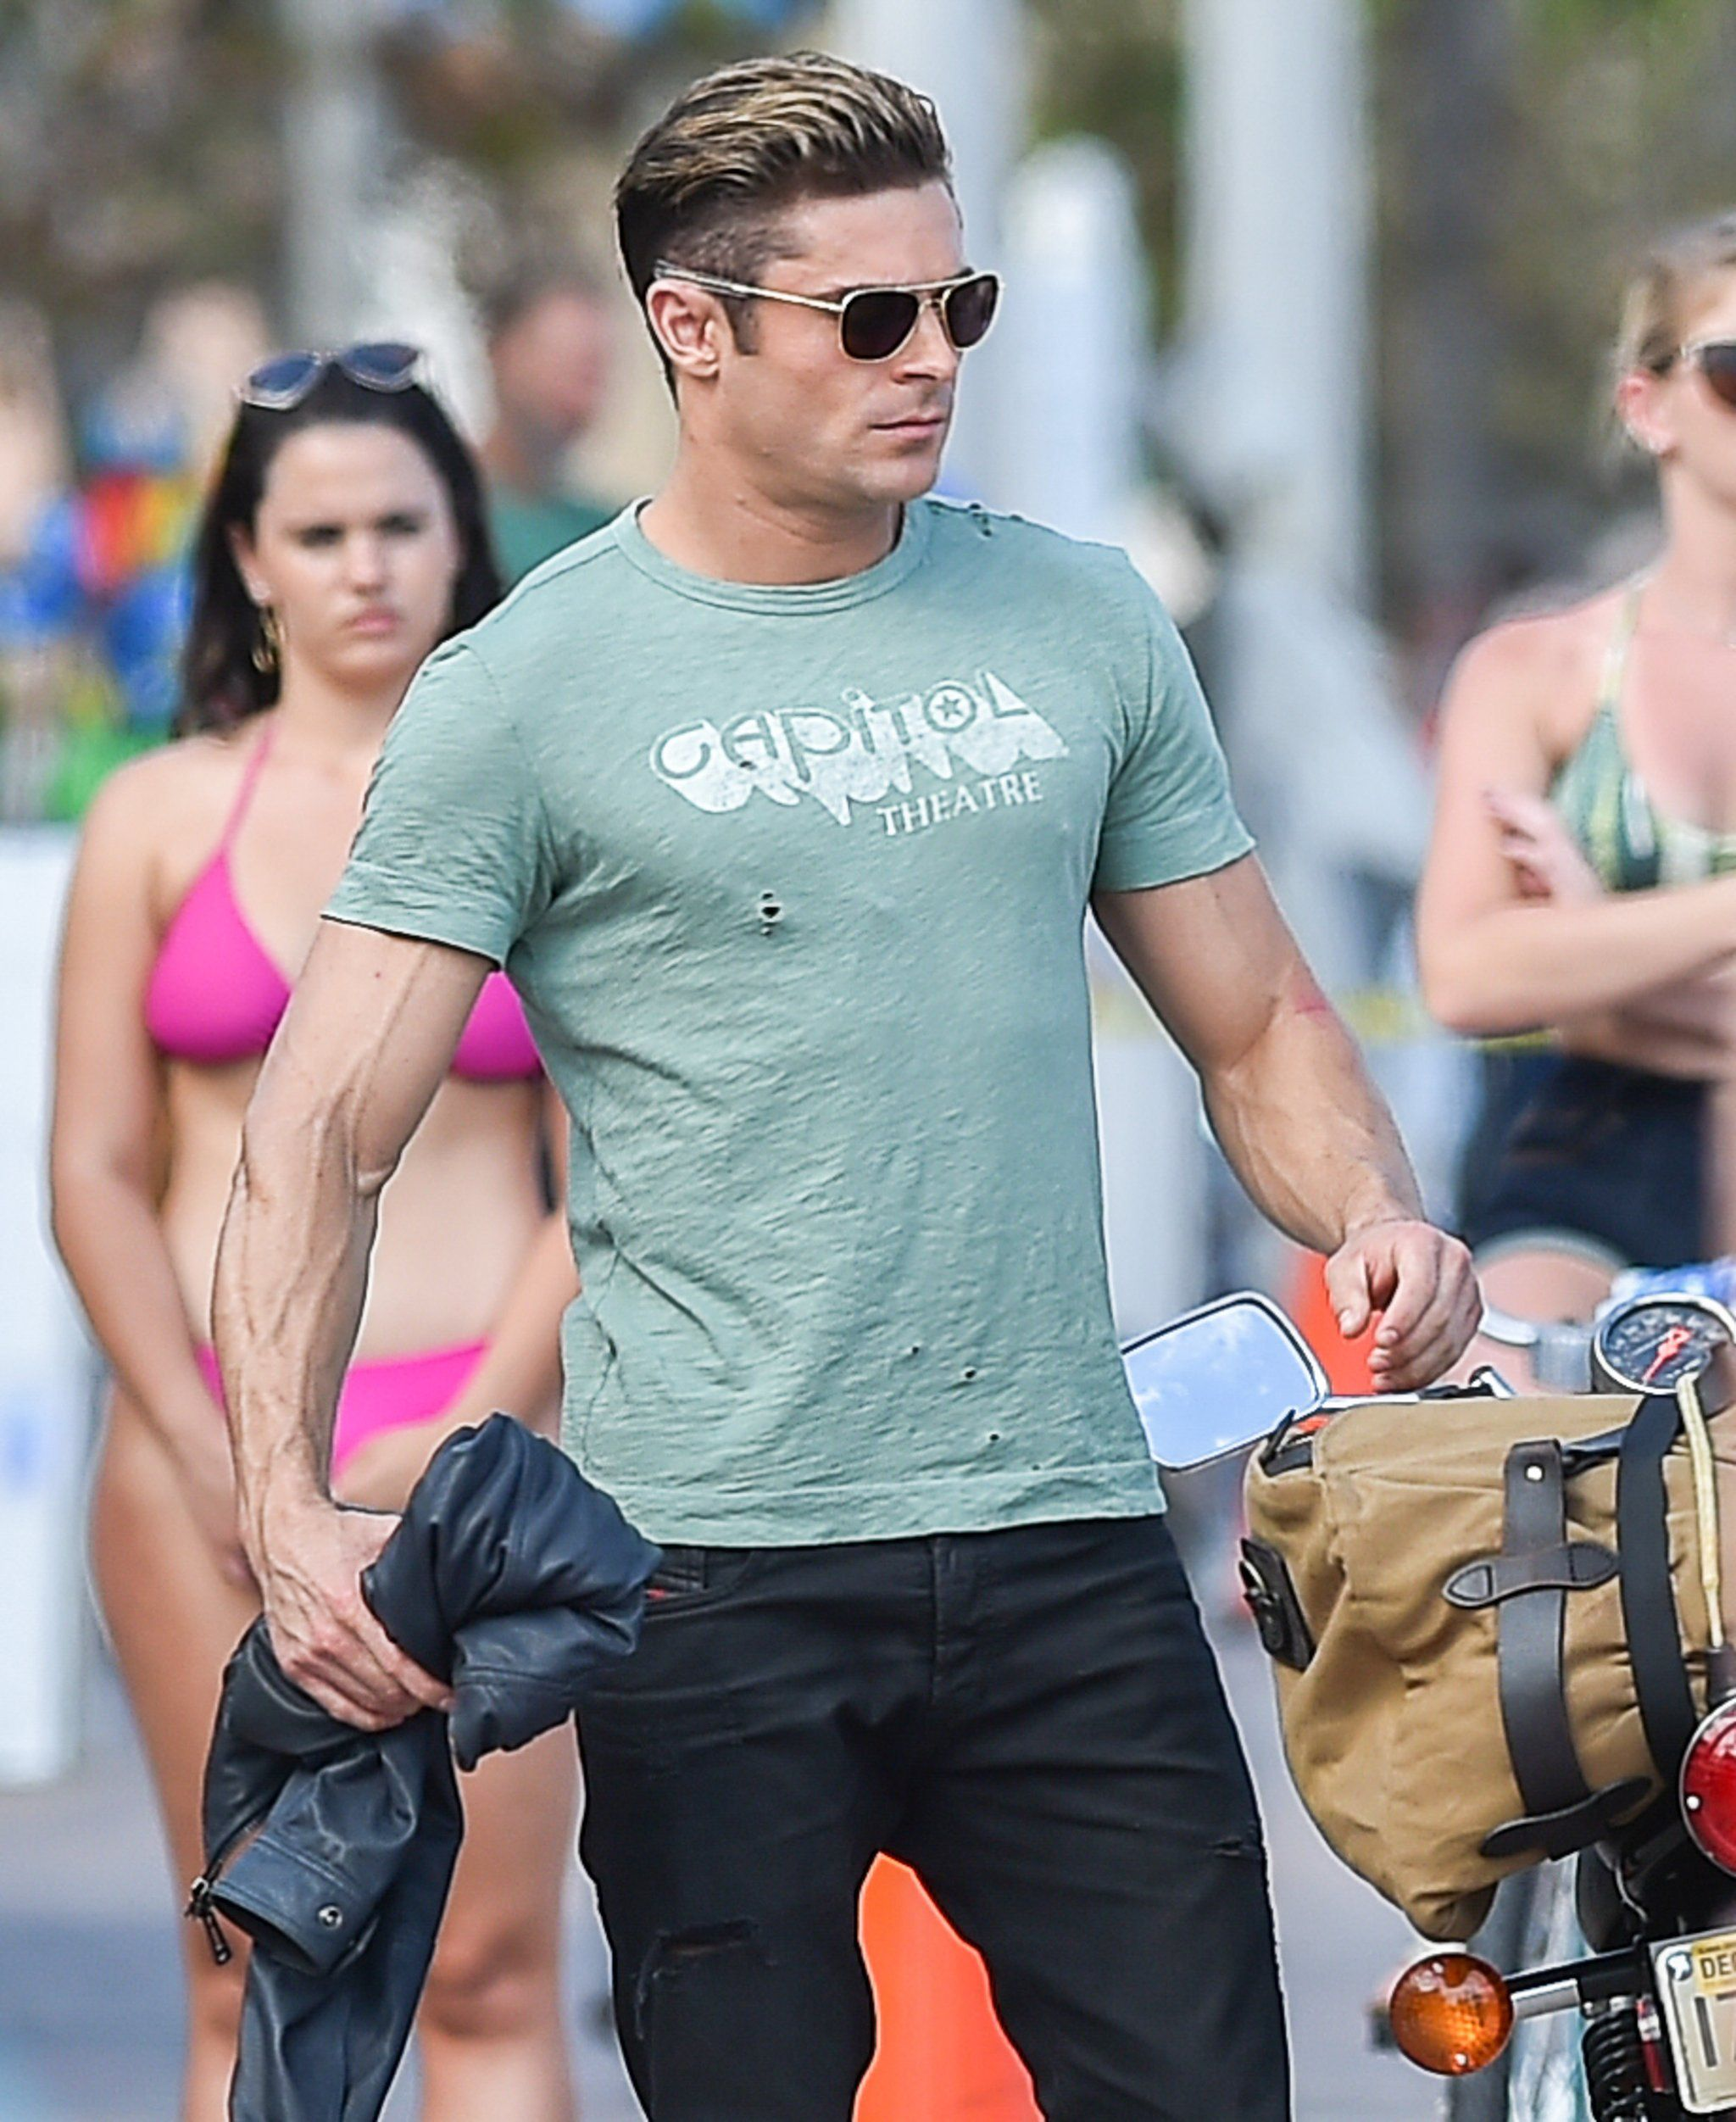 You\u0027ll Want to Ride Off Into the Sunset With Zac Efron After